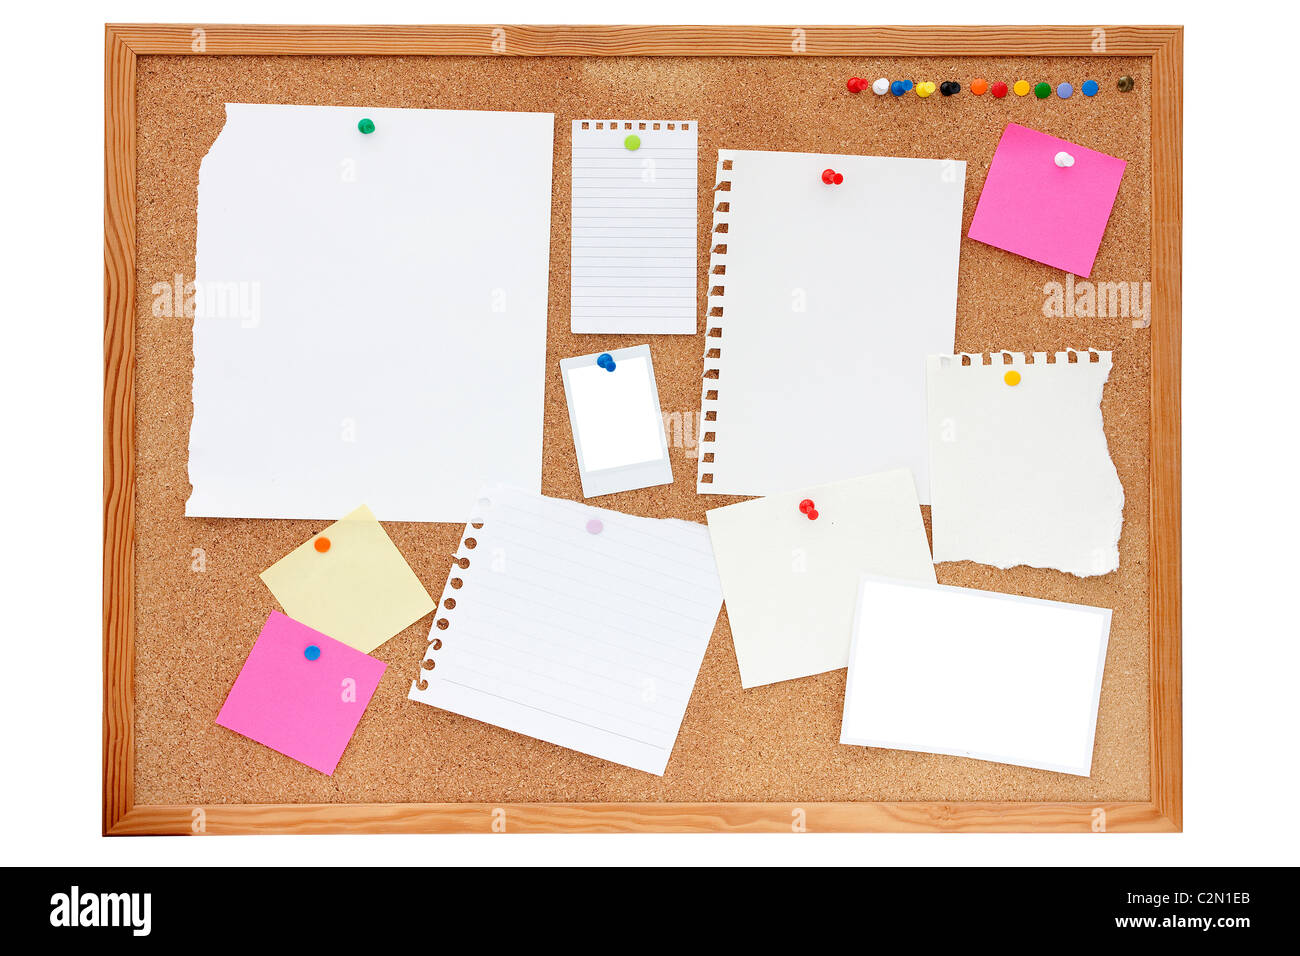 empty paper, documents, photos and notes pinned onto a pinboard or noticeboard - Stock Image